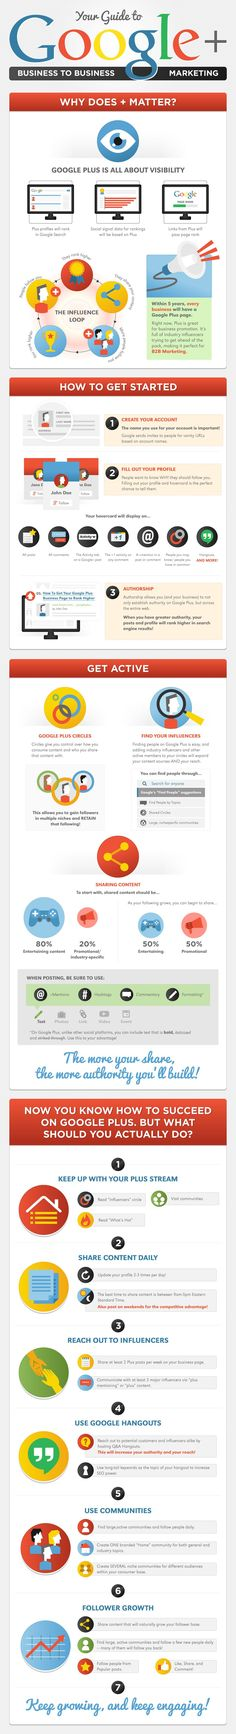 Google+ For B2B Marketing | Why And How To Use The Platform | IG - The Main Street Analyst